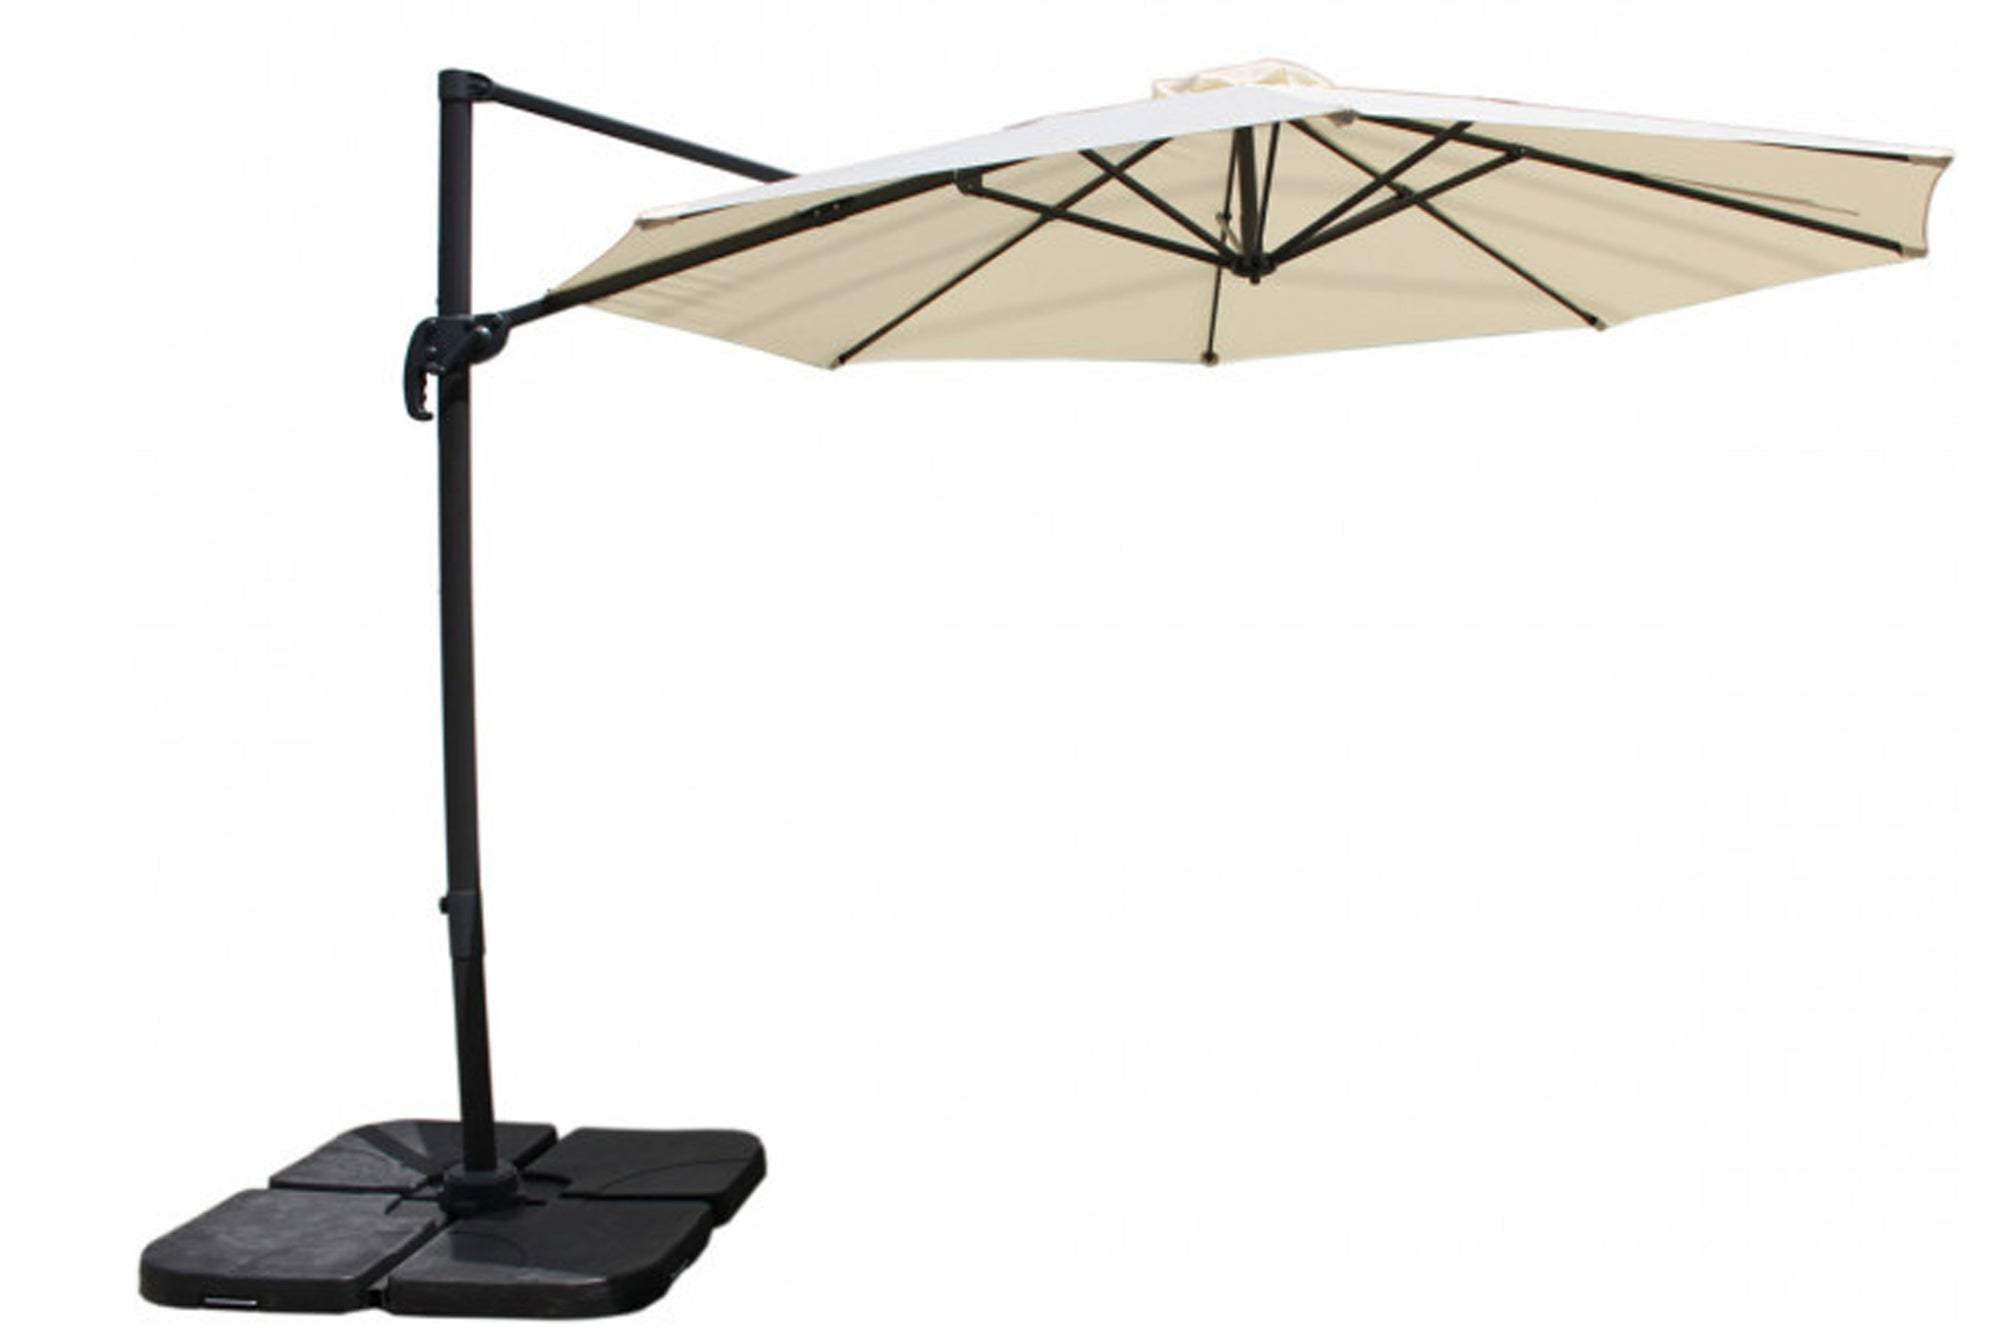 Panama Jack 10 FT Dia. Cantilever Umbrella with 105 lb. base